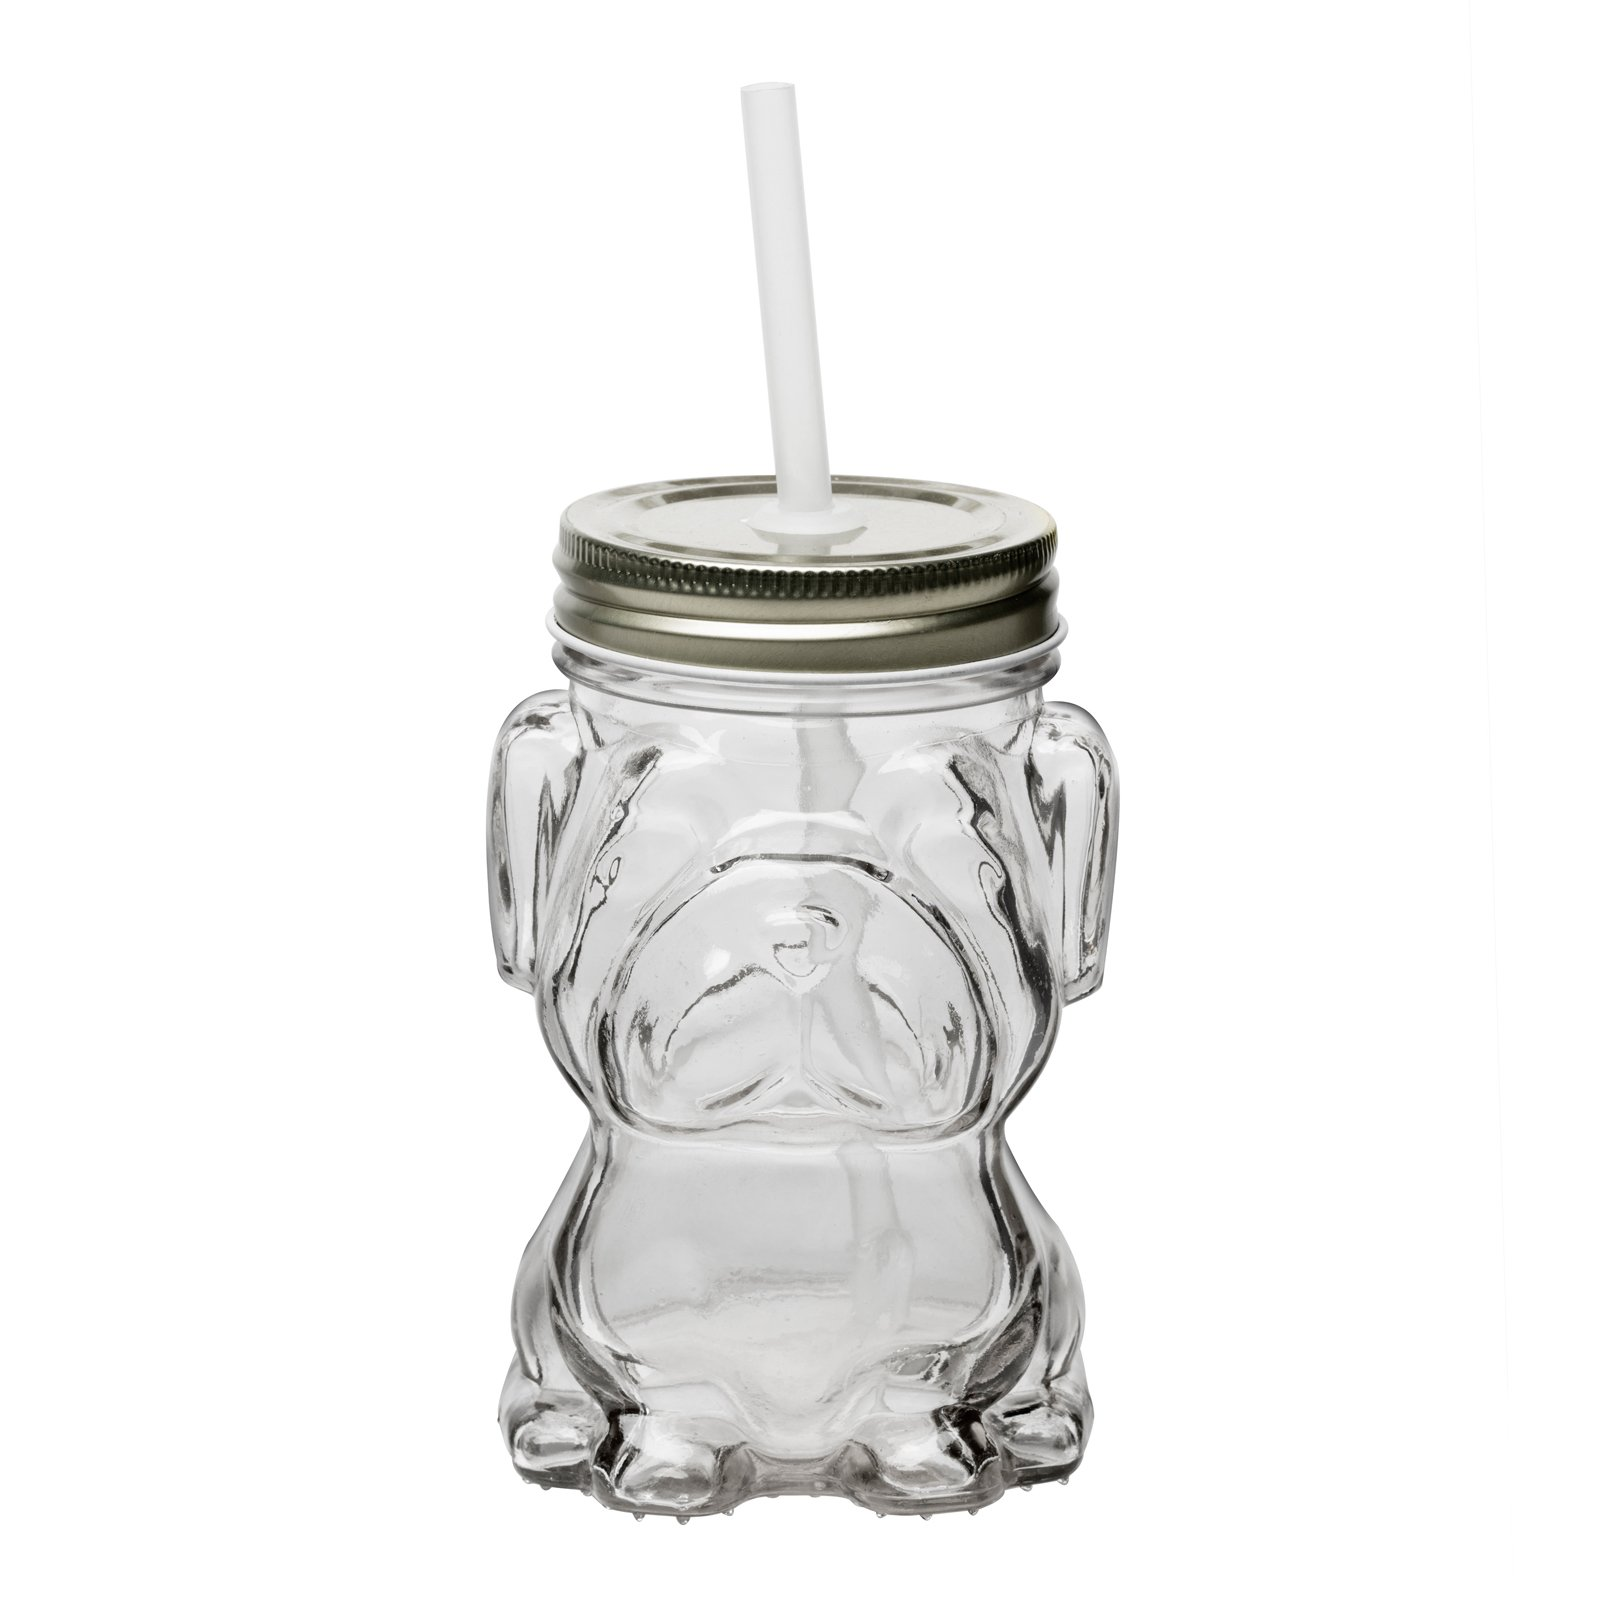 Amici Home, 7CM204SS6R Mad Dog Mason Jar, Silver Twist Top Lid Raised Textured Glass 14 Ounce Capacity, Set of 6